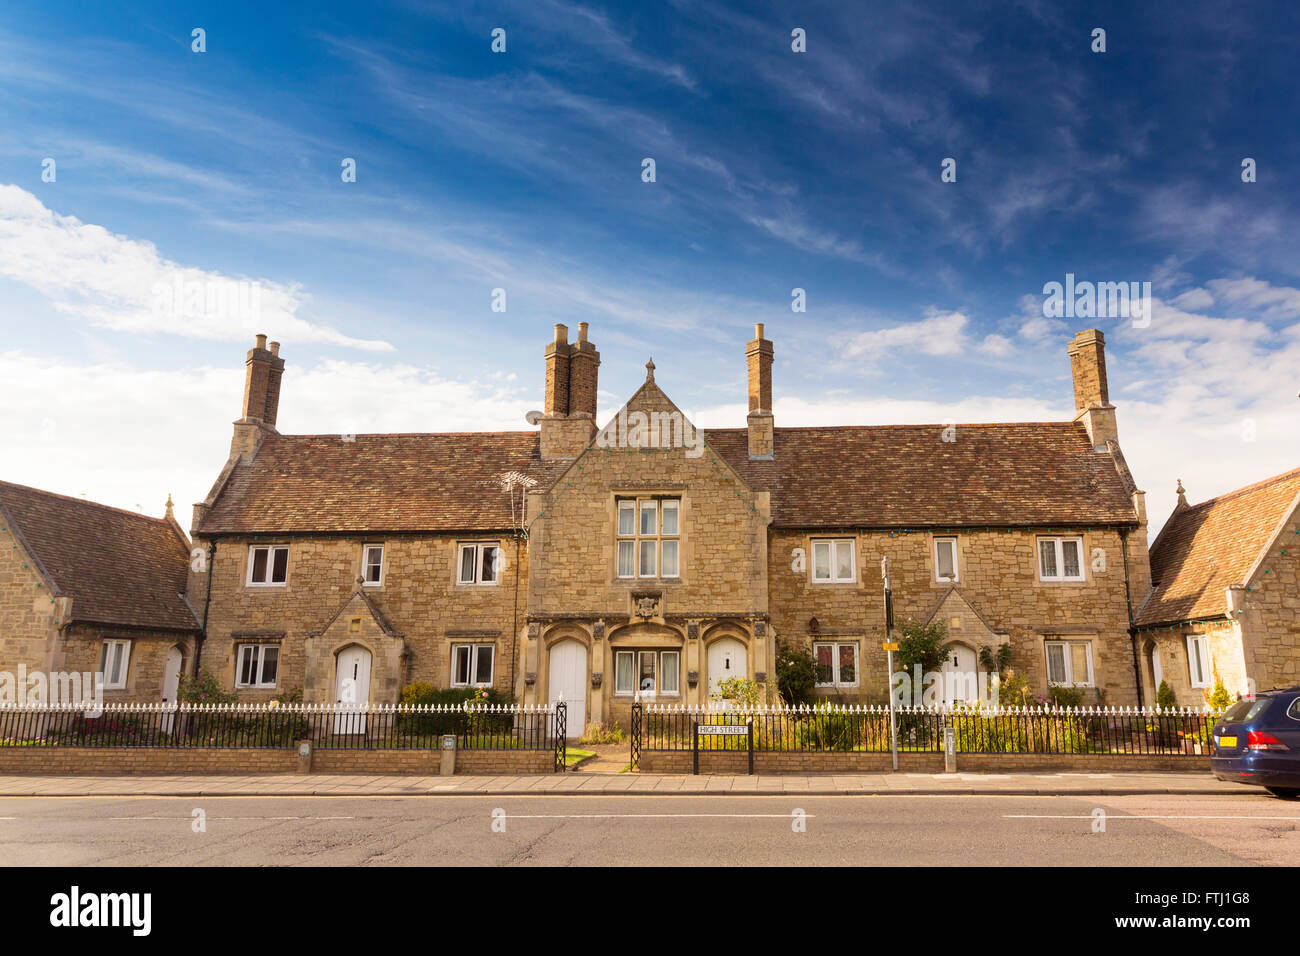 Ramsey in Cambridgeshire, UK - Stock Image